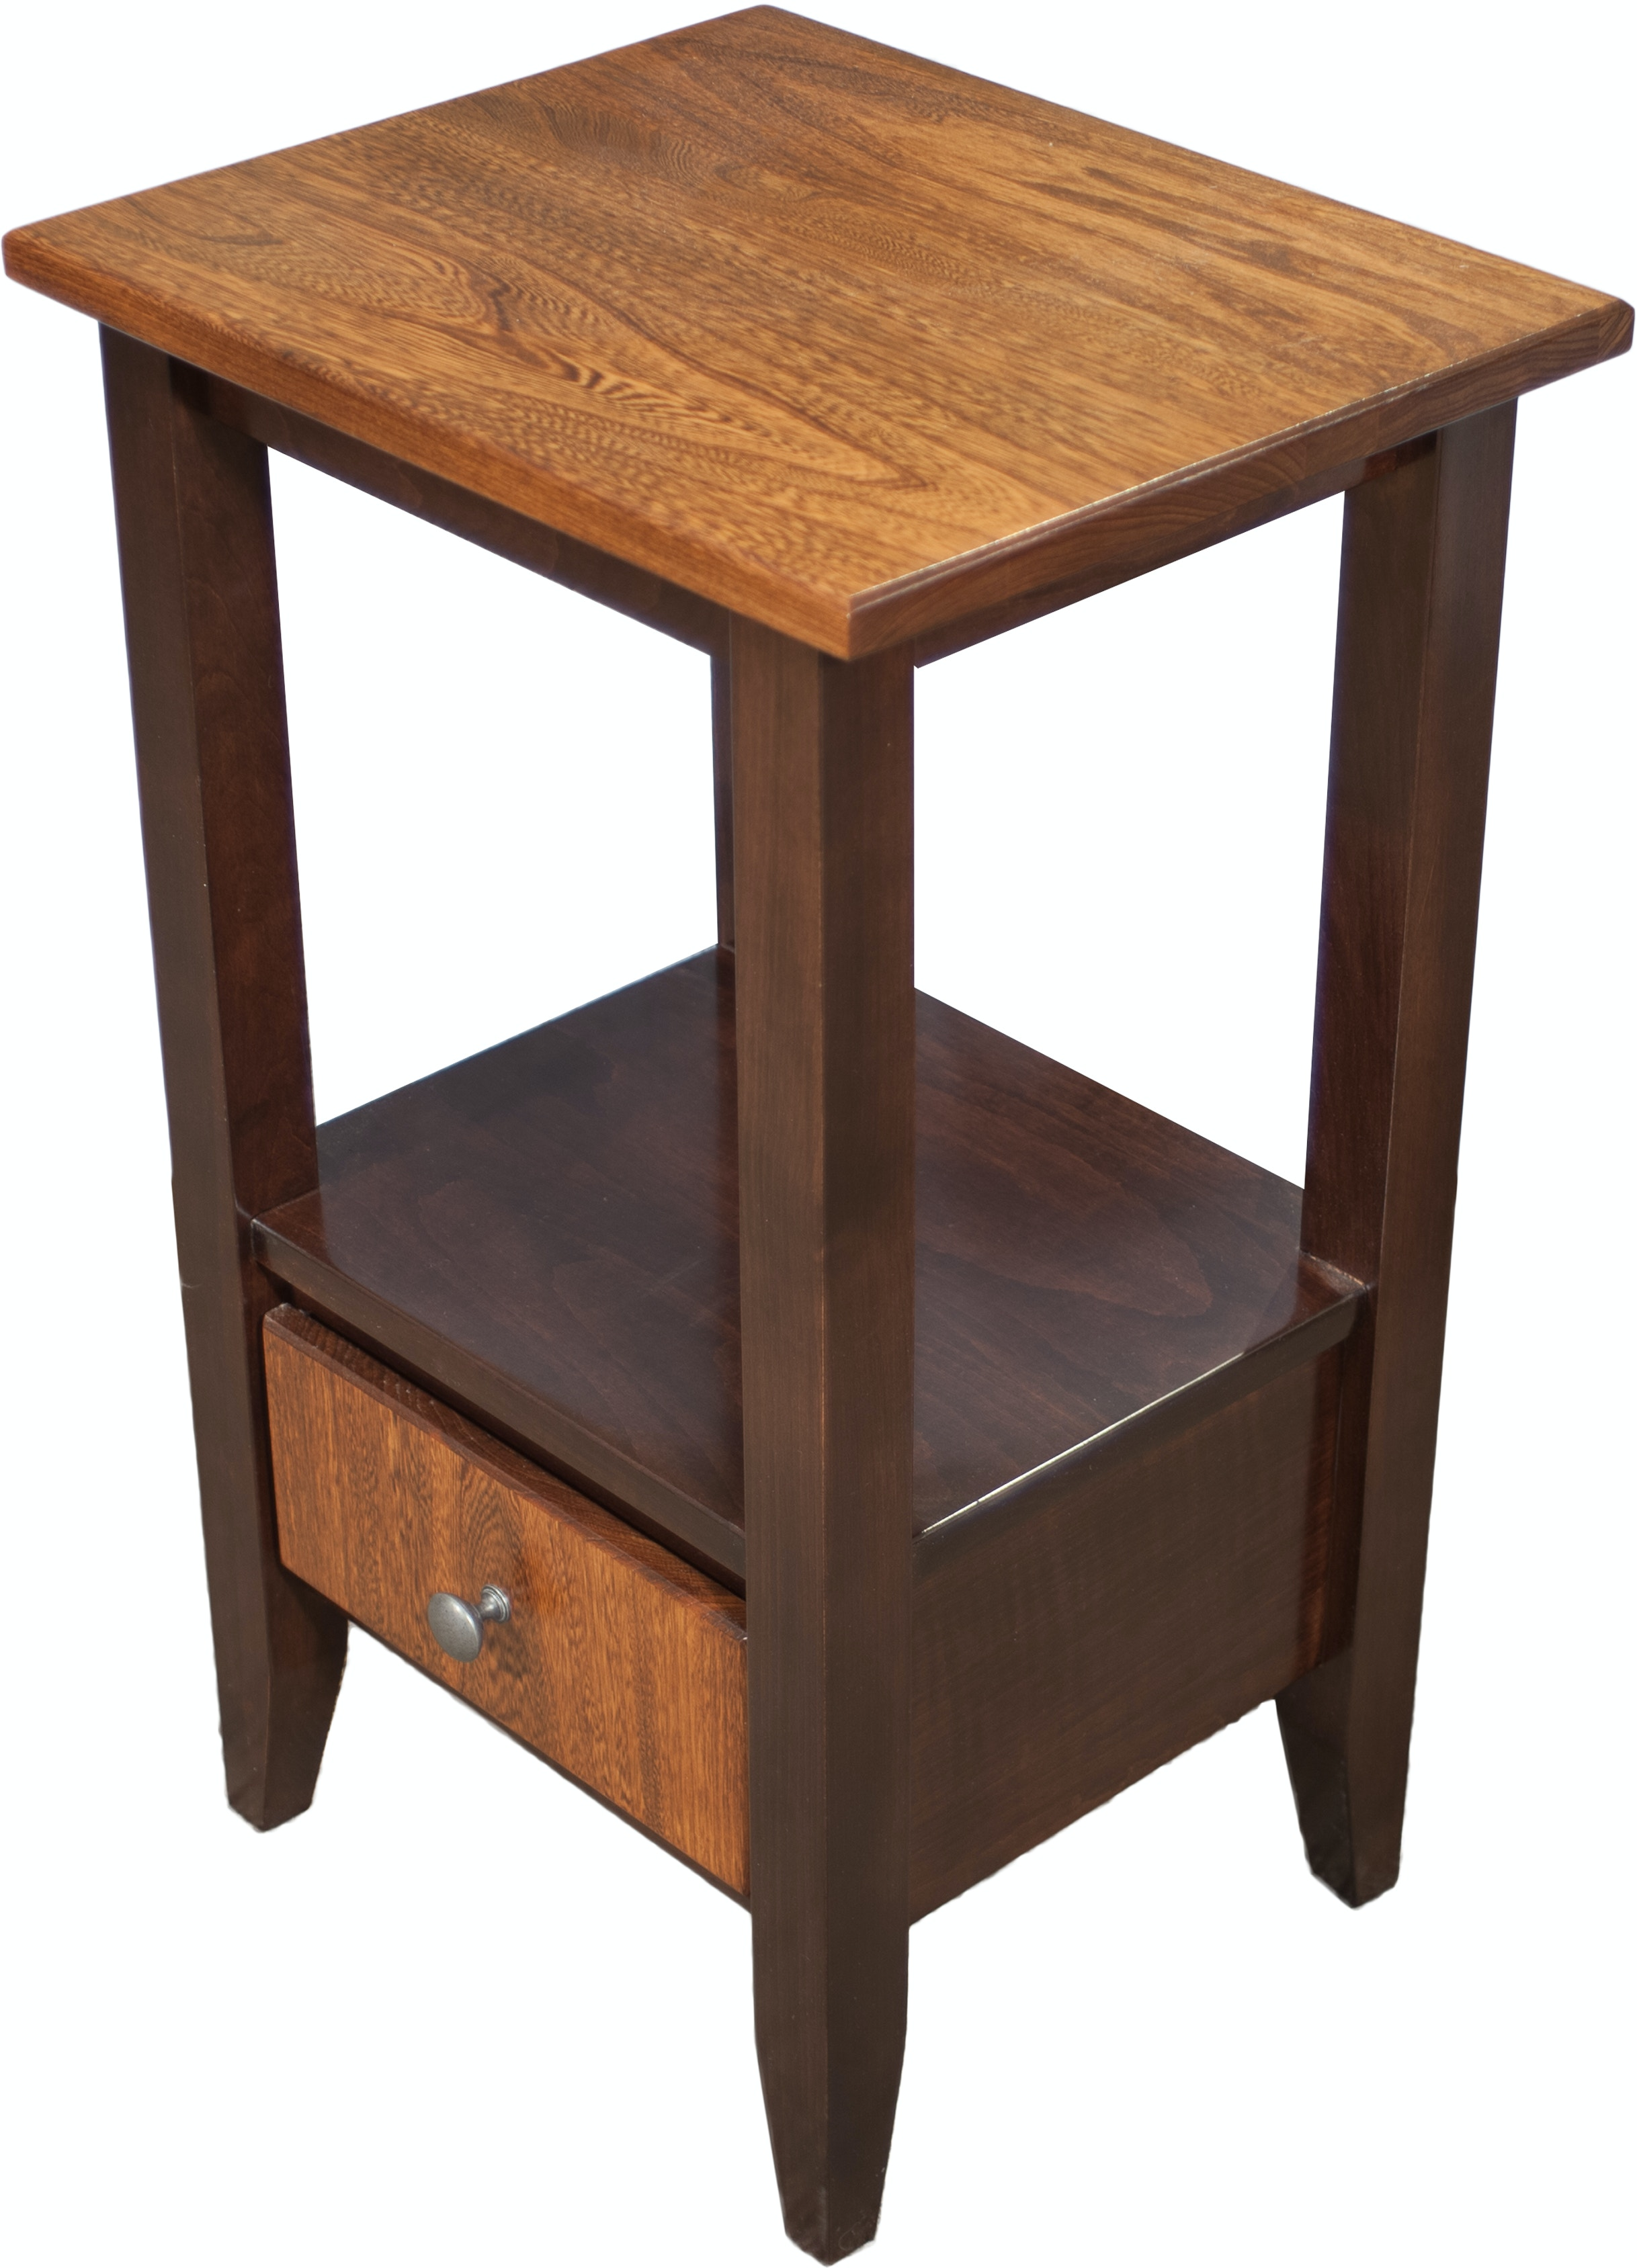 Amish works amish tall end table 281587